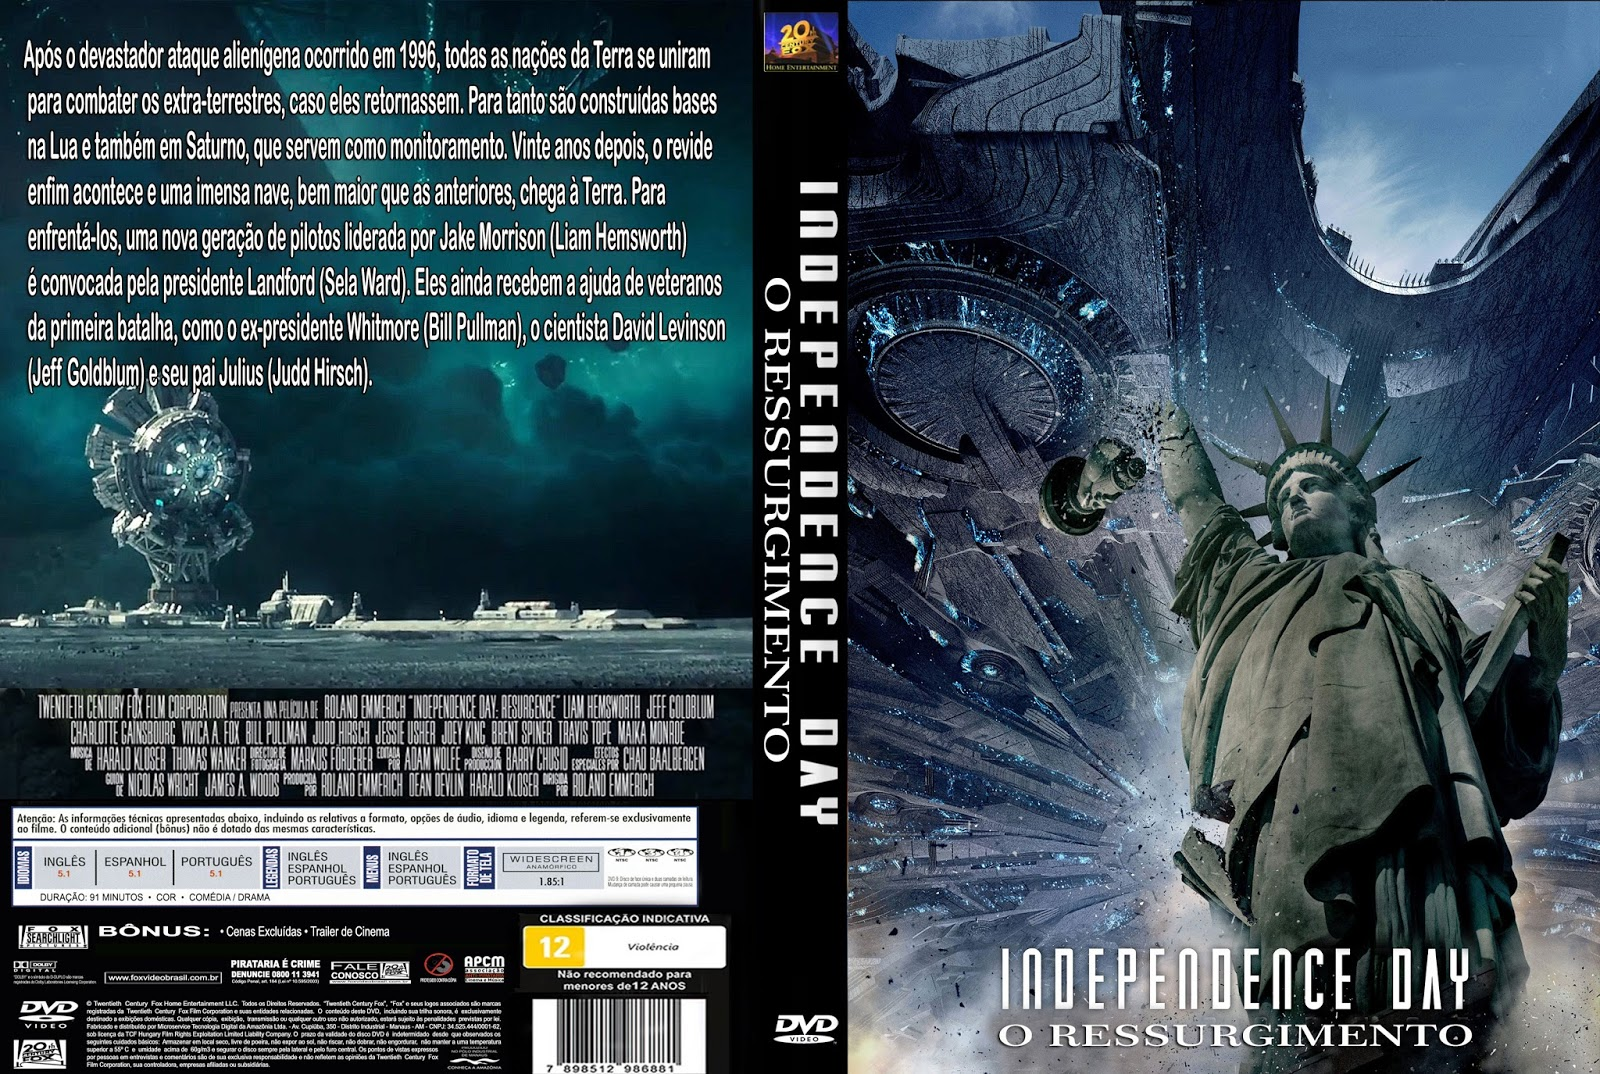 Baixar Independence Day O Ressurgimento DVD-R Independence 2BDay 2BO 2BRessurgimento 2BDVD R 2B  2BXANDAODOWNLOAD